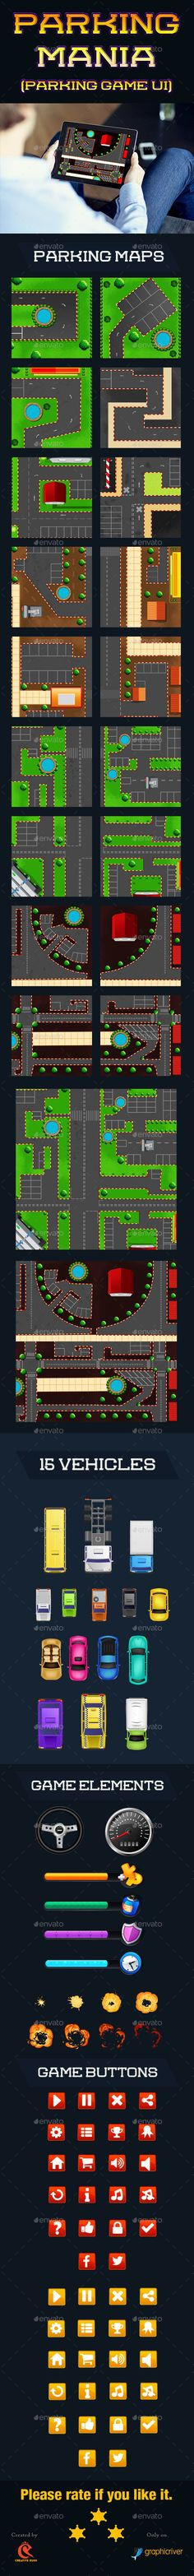 Parking Mania Car Game UI Template PSD, Transparent PNG, Vector EPS, AI Illustrator. Download here: http://graphicriver.net/item/parking-mania-car-game/14824258?ref=ksioks